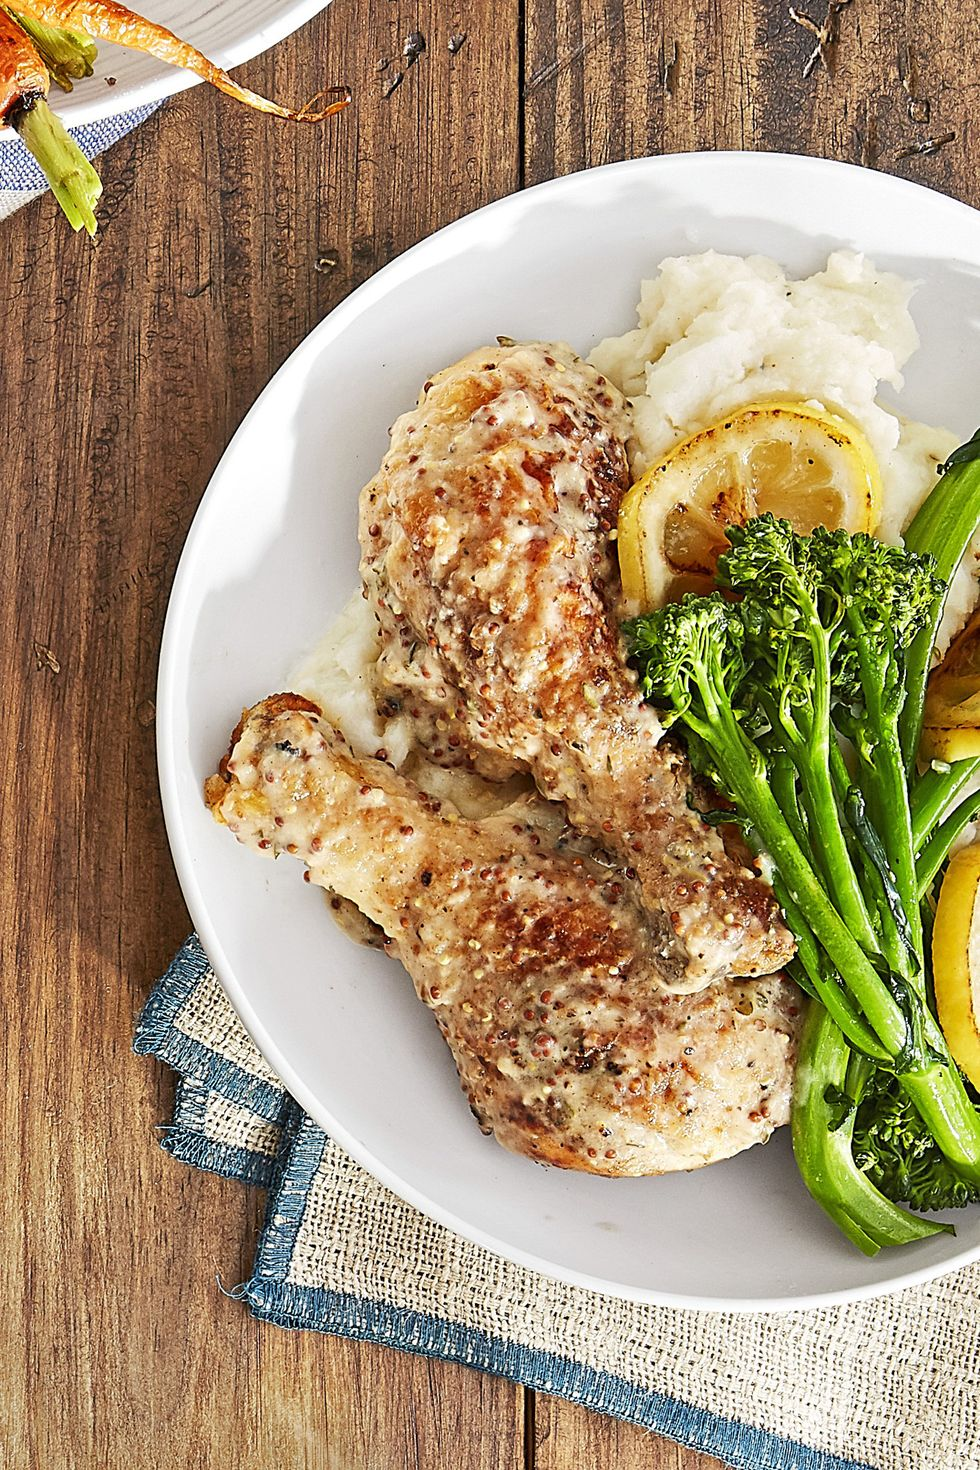 25 Easy Healthy Dinner Recipes -  Dijon-Smothered Chicken Legs with Broccolini